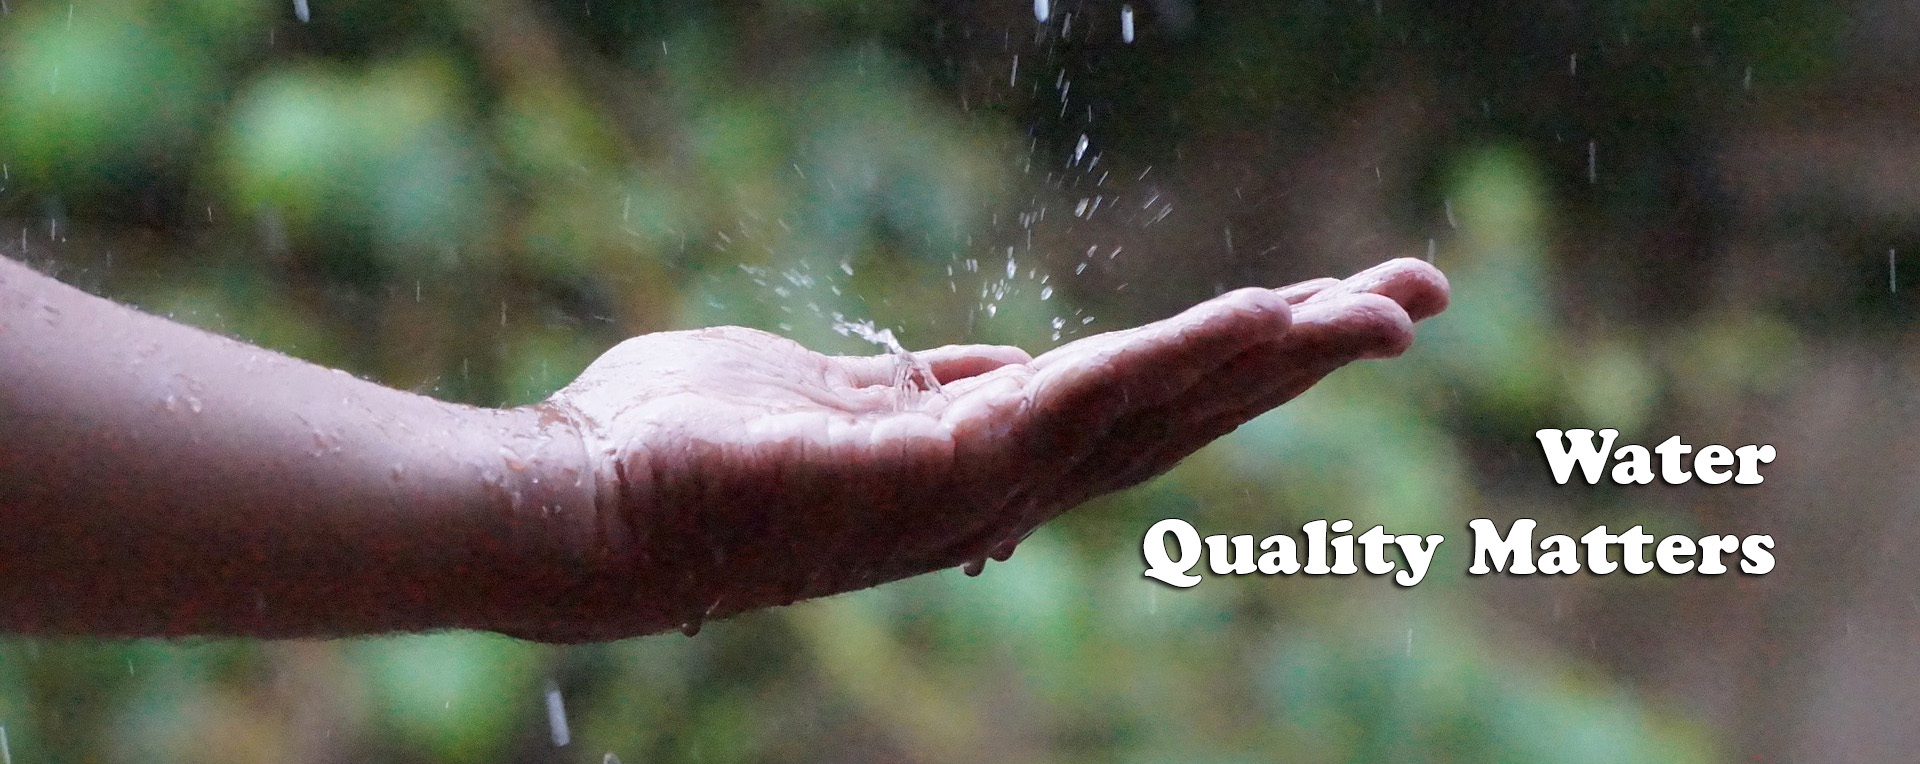 Excellent drinking water - water quality matters at Leeds Water Works Board Leeds Alabama